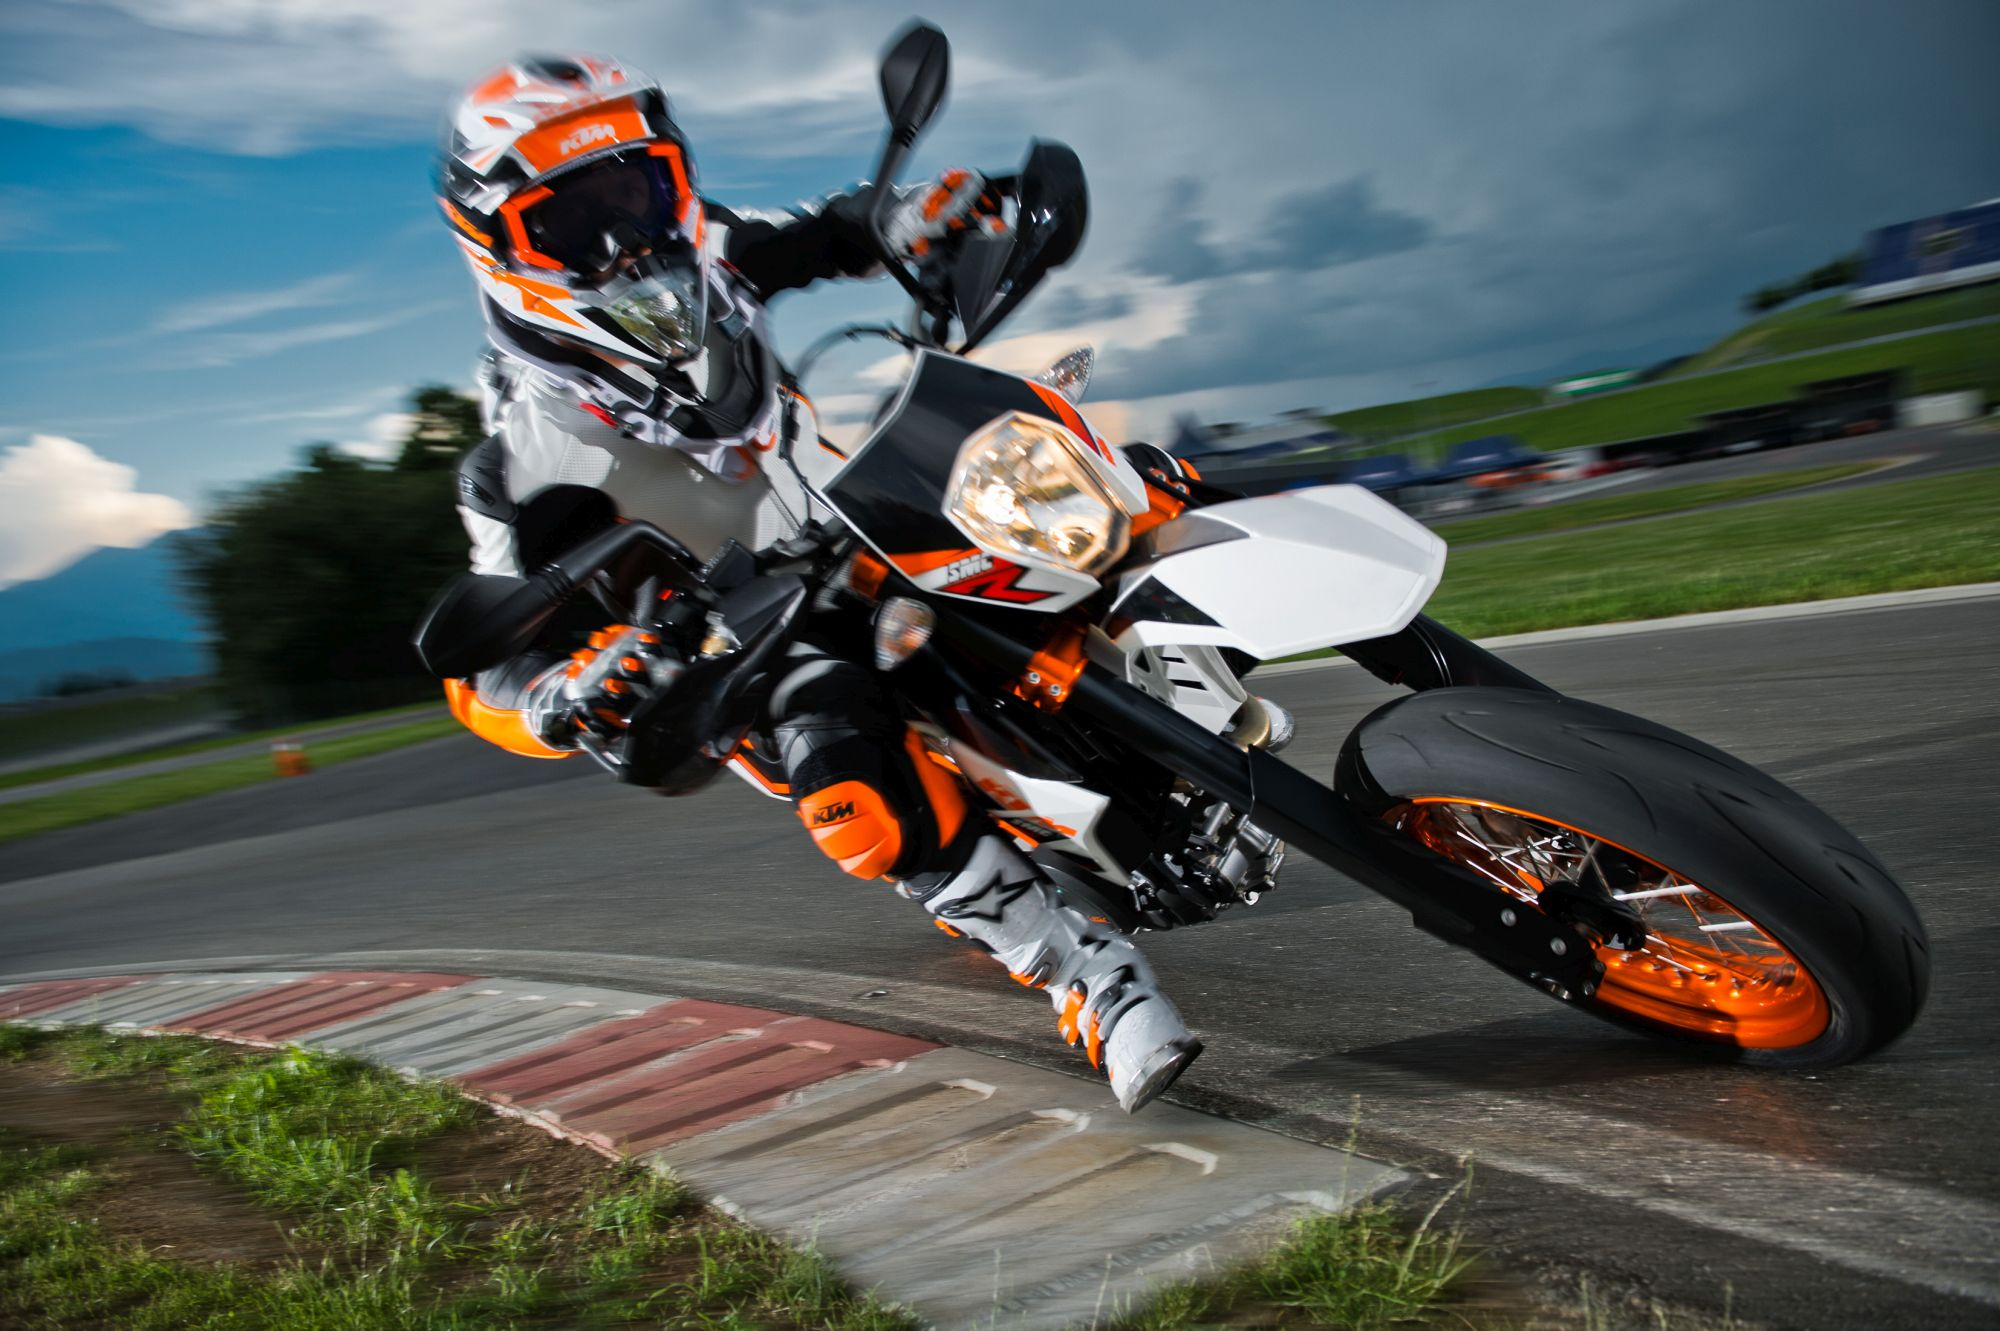 Ktm 690 smc r wallpapers for desktop - Ktm 690 Smc R 2016